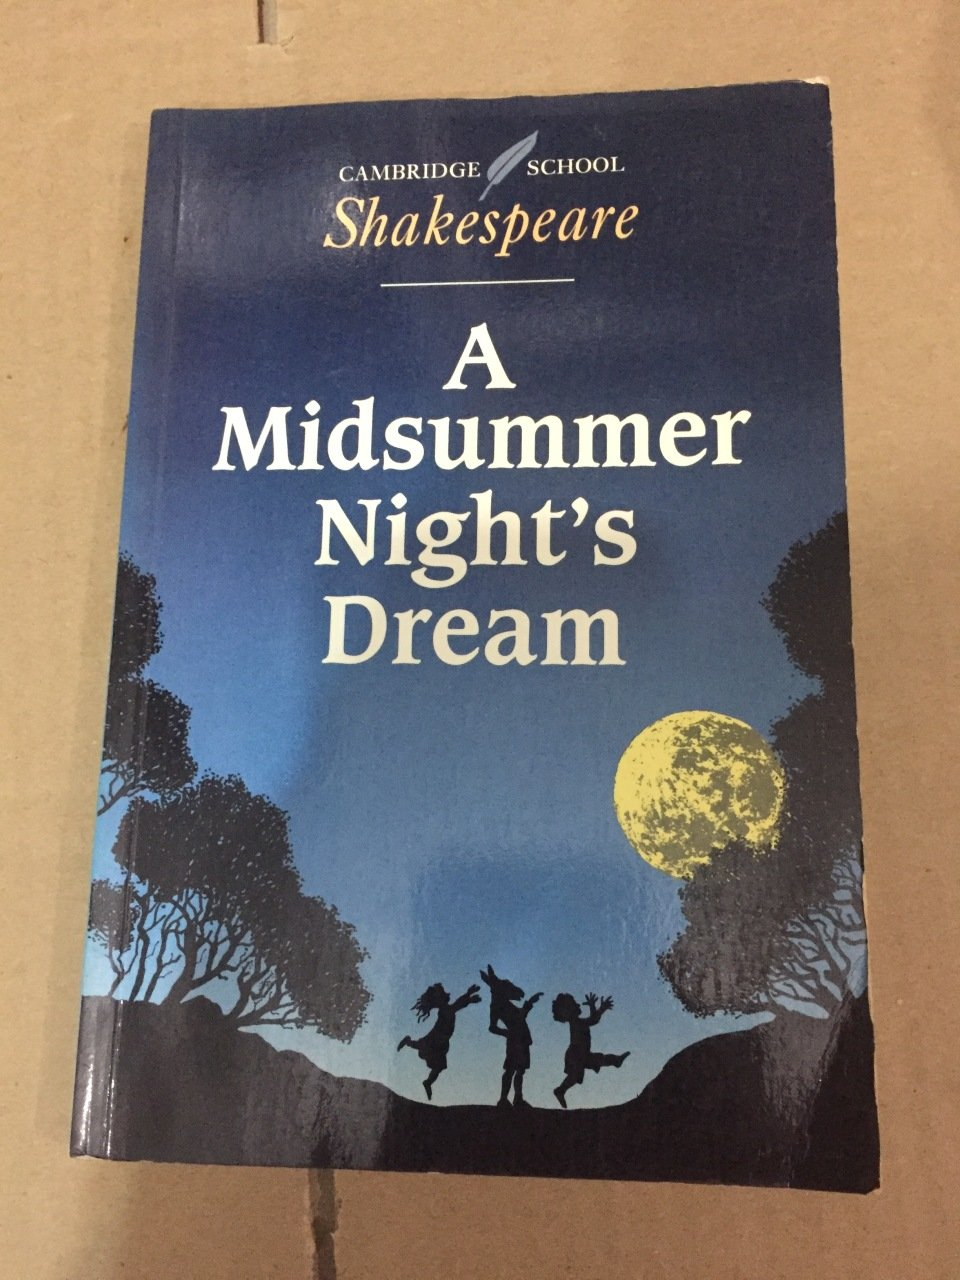 a midsummer nights dream love thesis Analysis of a midsummer night's dream by william shakespeare a midsummer nights dream is a play by william shakespeare, and i believe is mainly summed up by this line from the play 'the course of true love never did run smooth' this is basically saying that being in love comes with many obstacles and dilemmas.